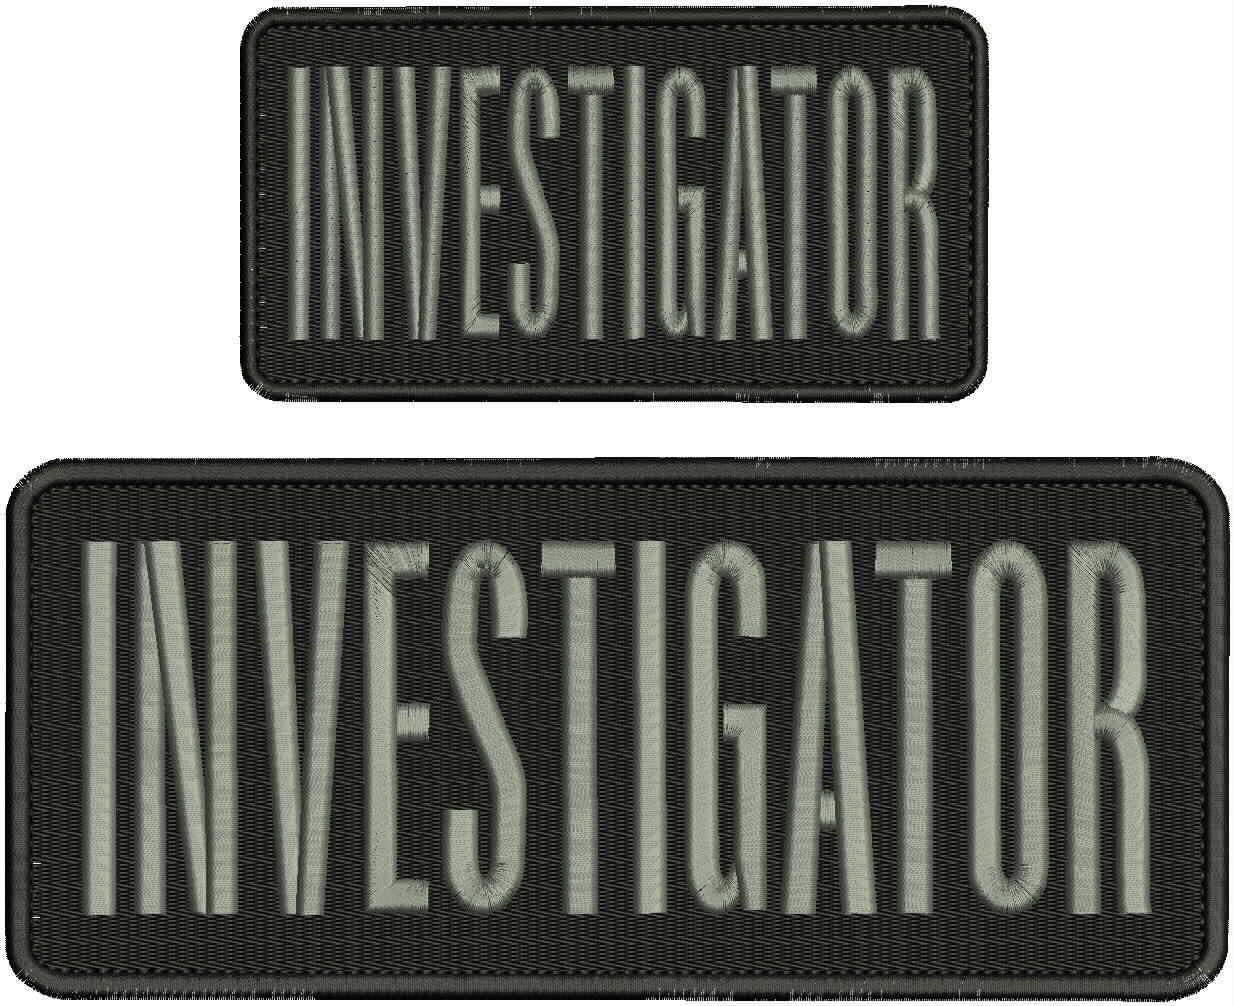 Investigator Omaha Mall Embroidery Patch 4x10 Classic and inches Letters 3x6 Silver